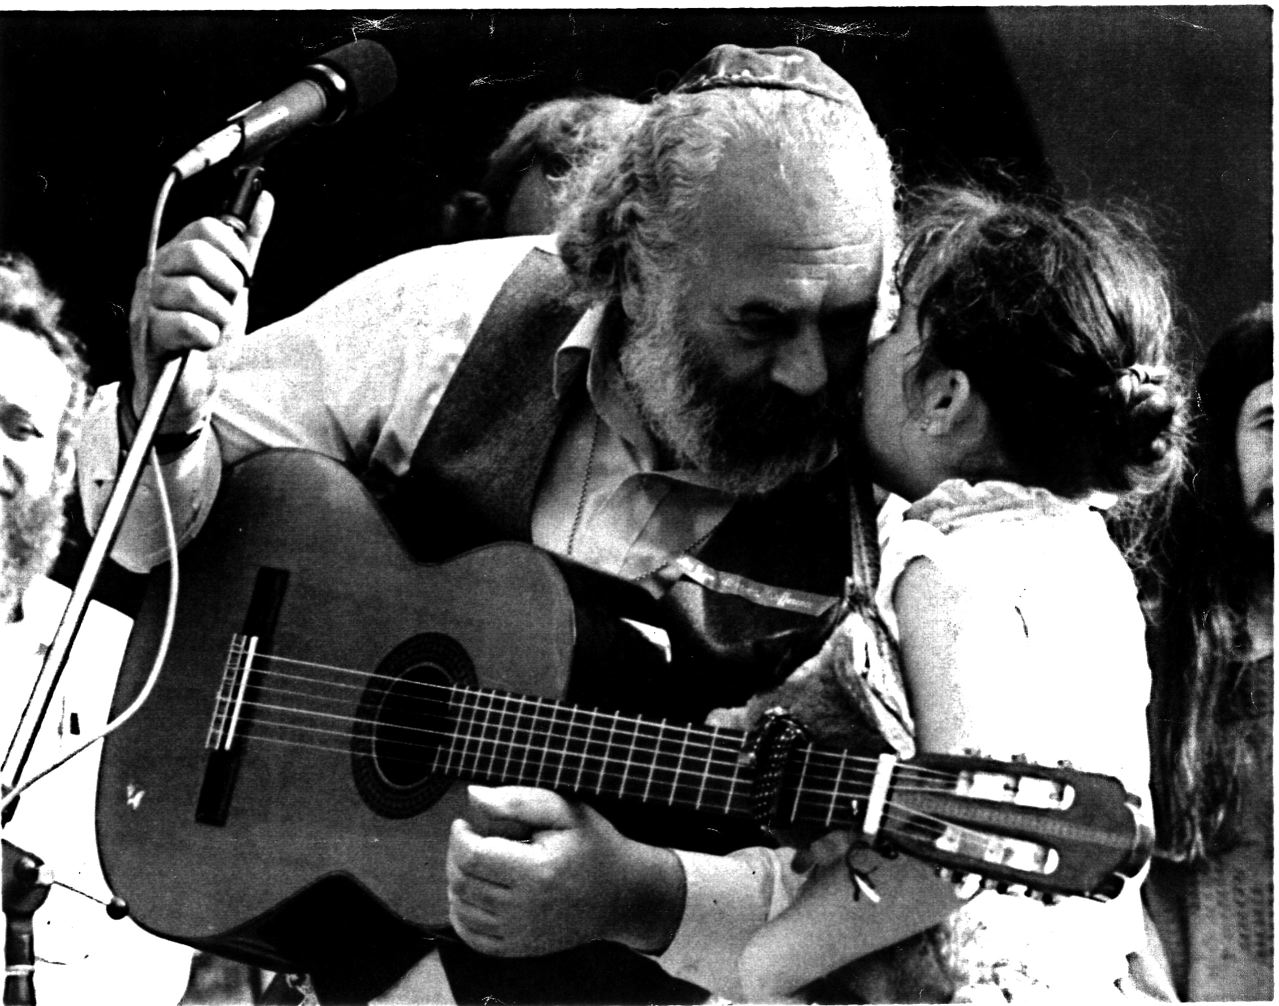 Shlomo_Daughter_1983